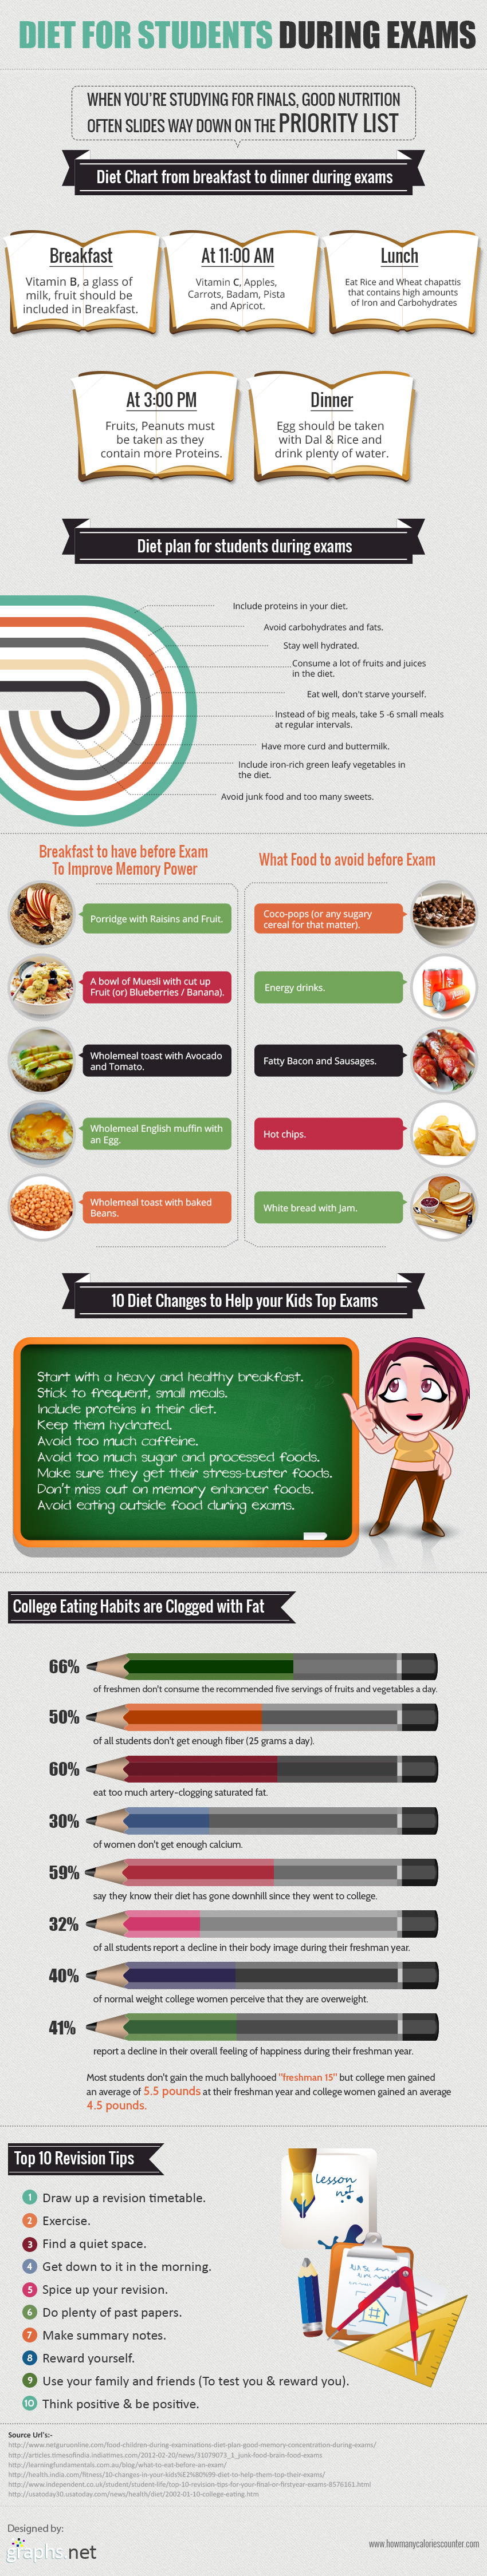 Exam time diet: what to eat and what not, and much more!